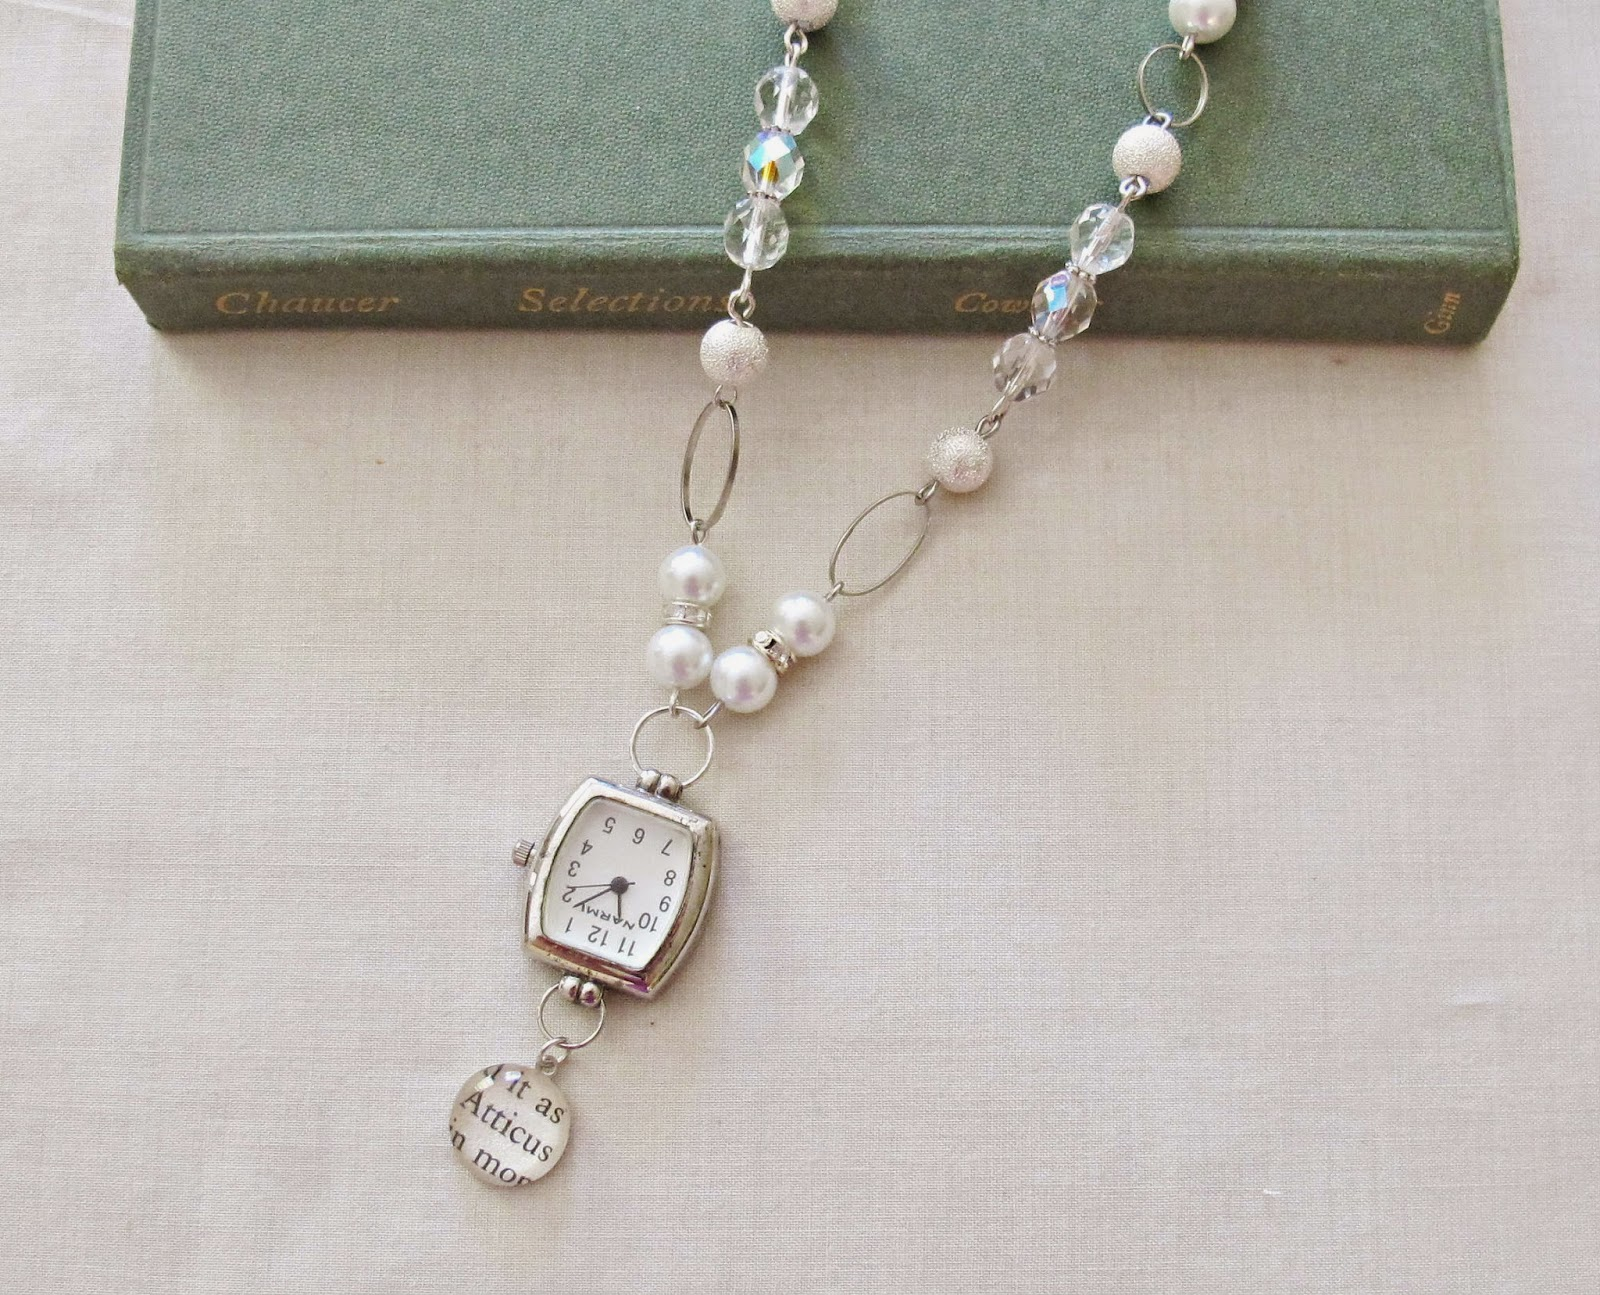 image atticus finch watch necklace pendant silver white crystal glass pearls two cheeky monkeys to kill a mockingbird